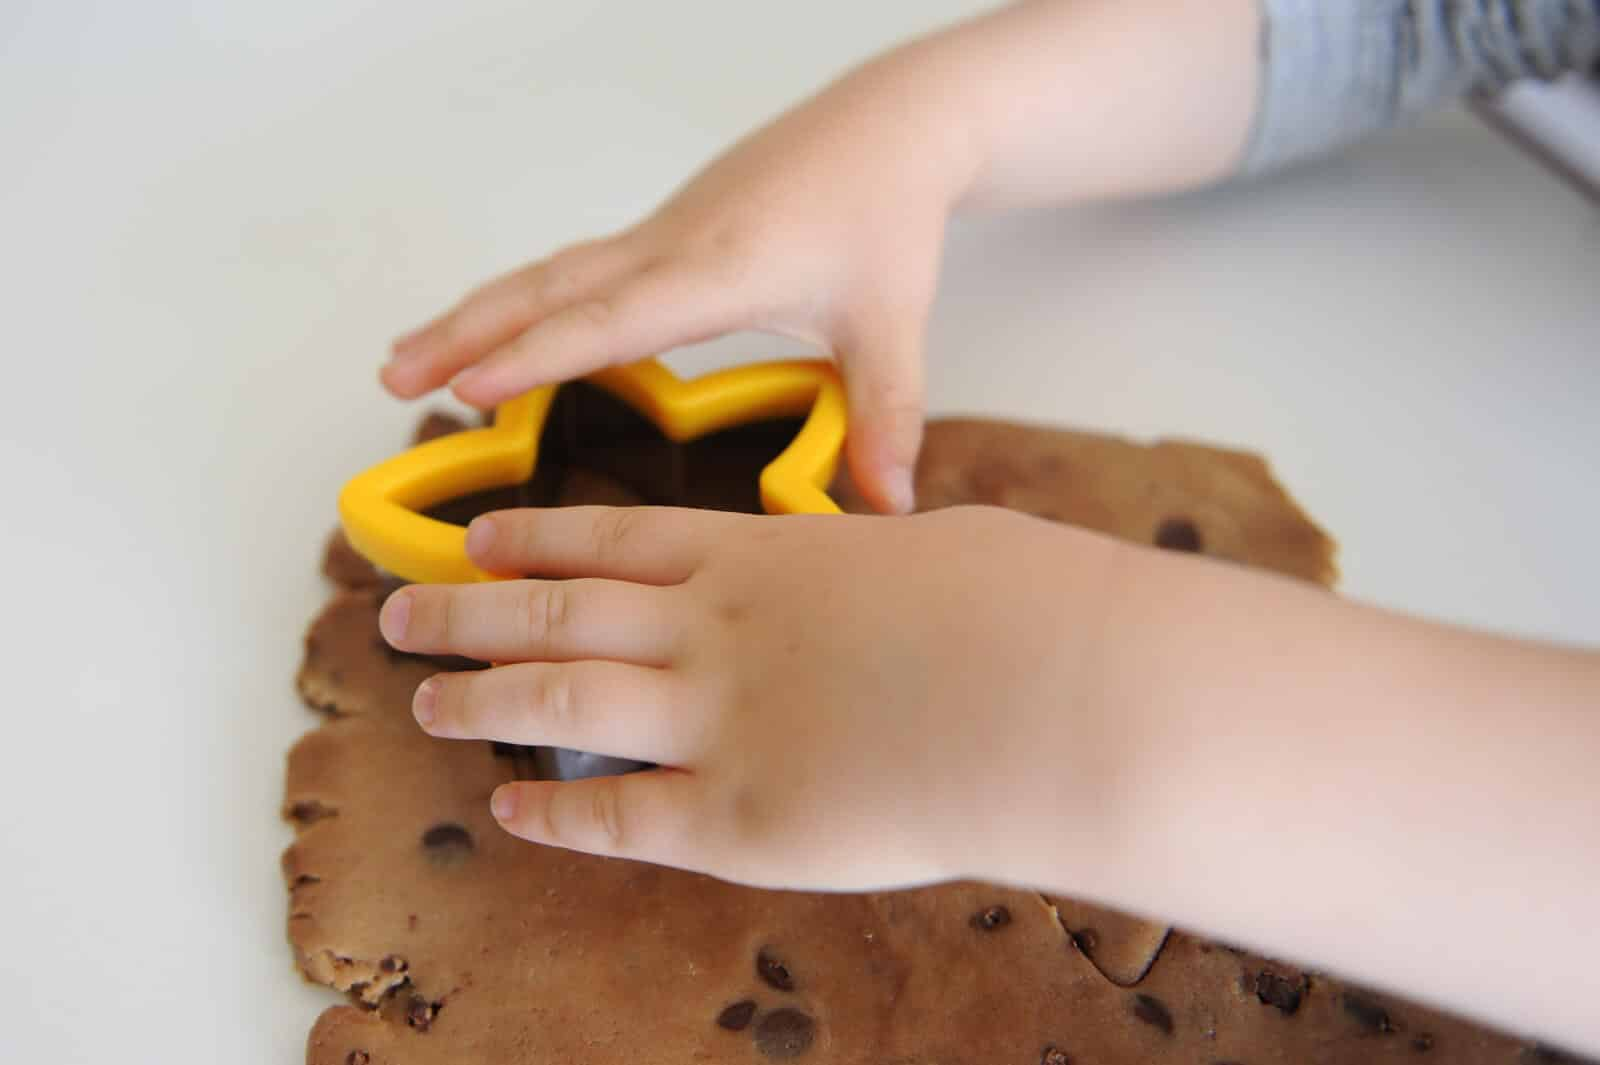 child\'s hands cutting dough with a star cutter